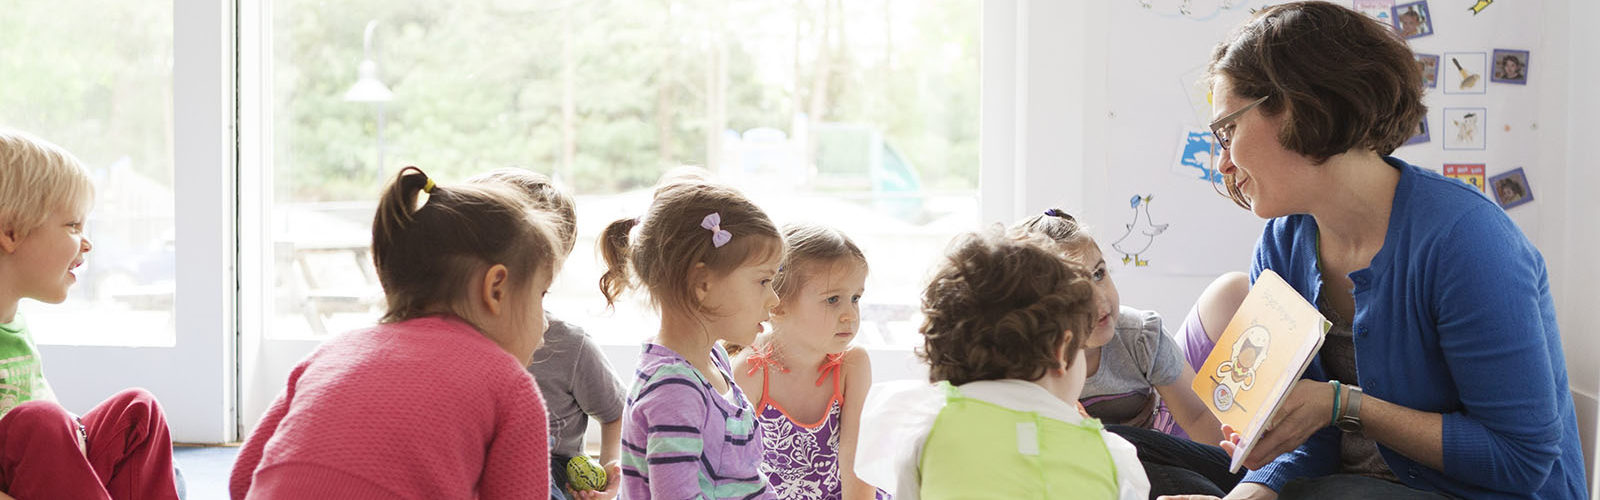 ecole-maternelle-teddy-bear-club-recrute-enseignantes-une